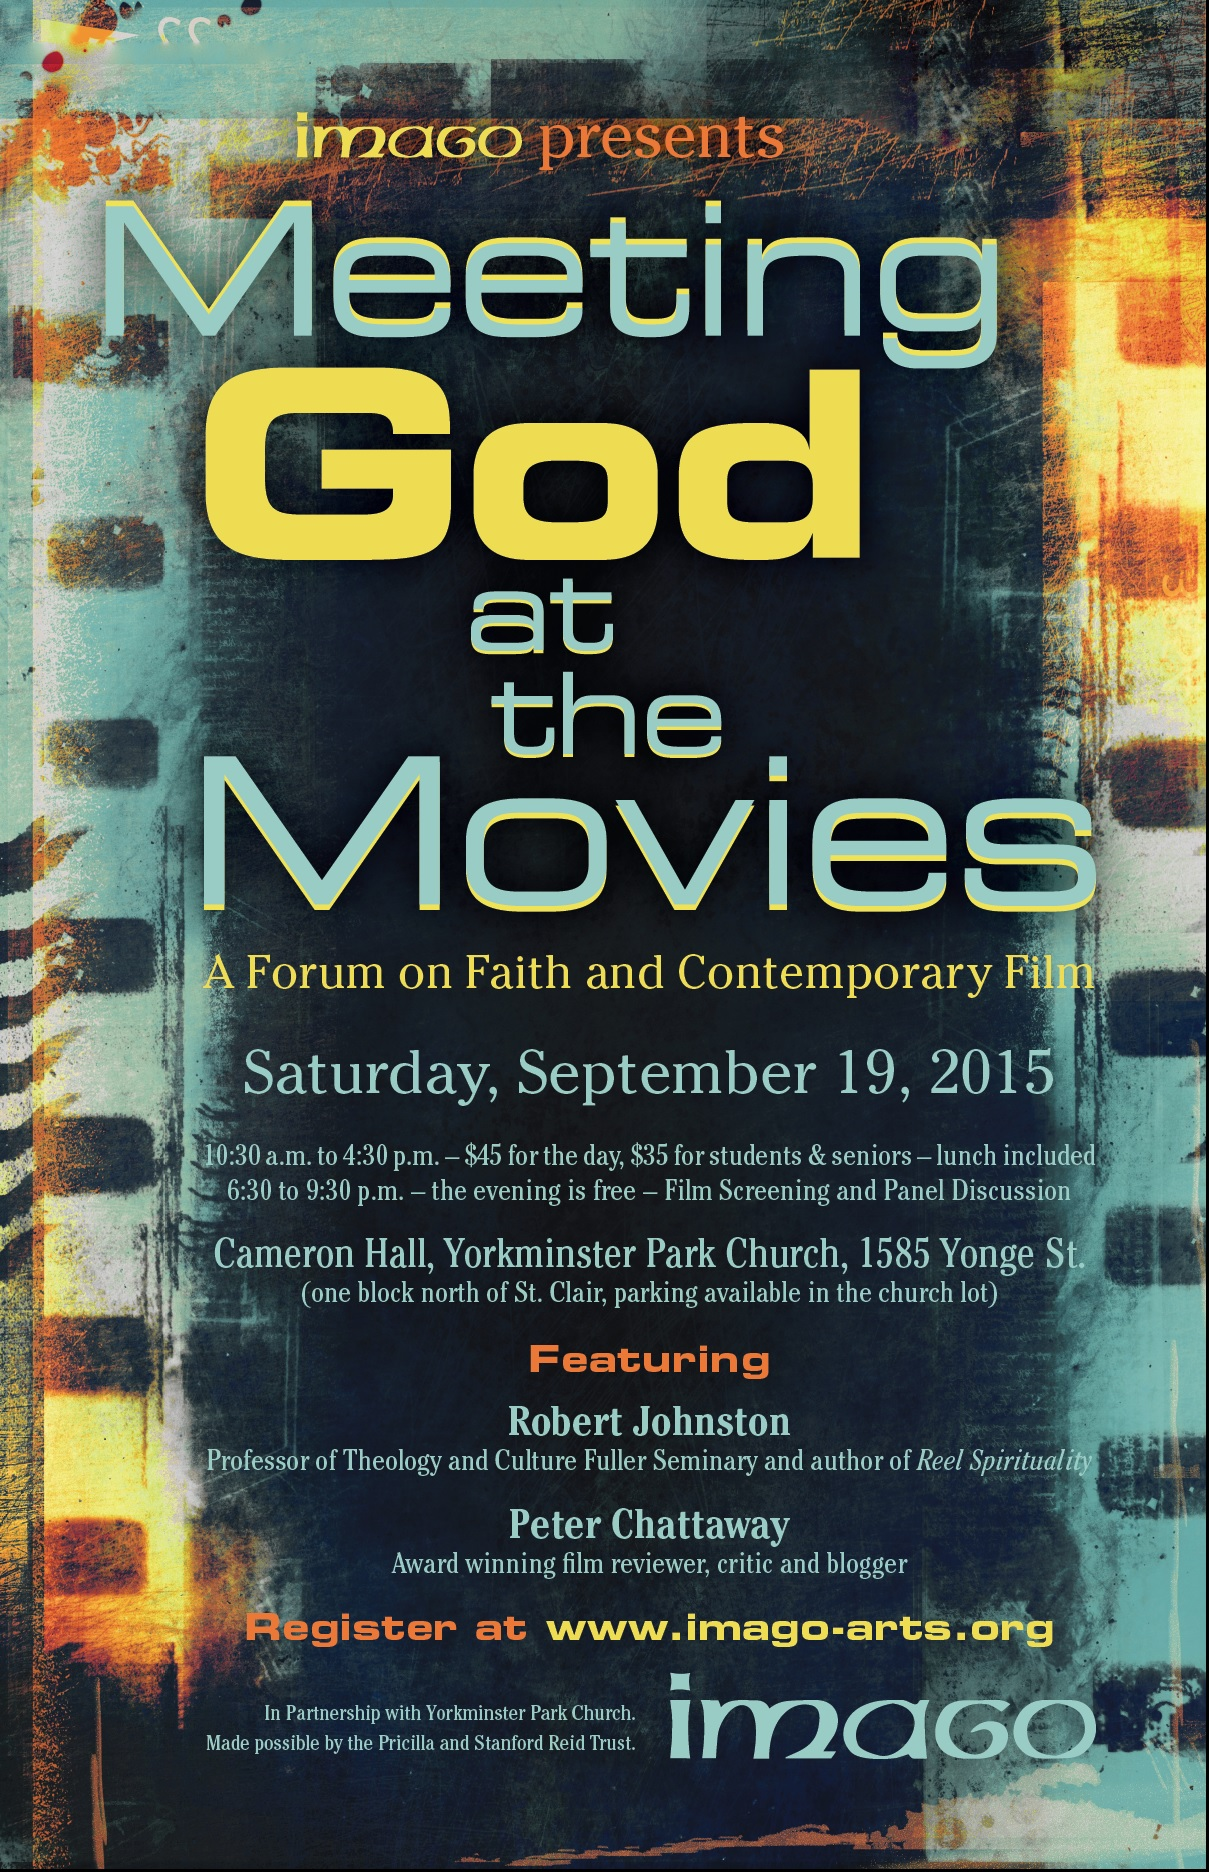 VIDEO - Meeting God at the Movies - an imago conversation